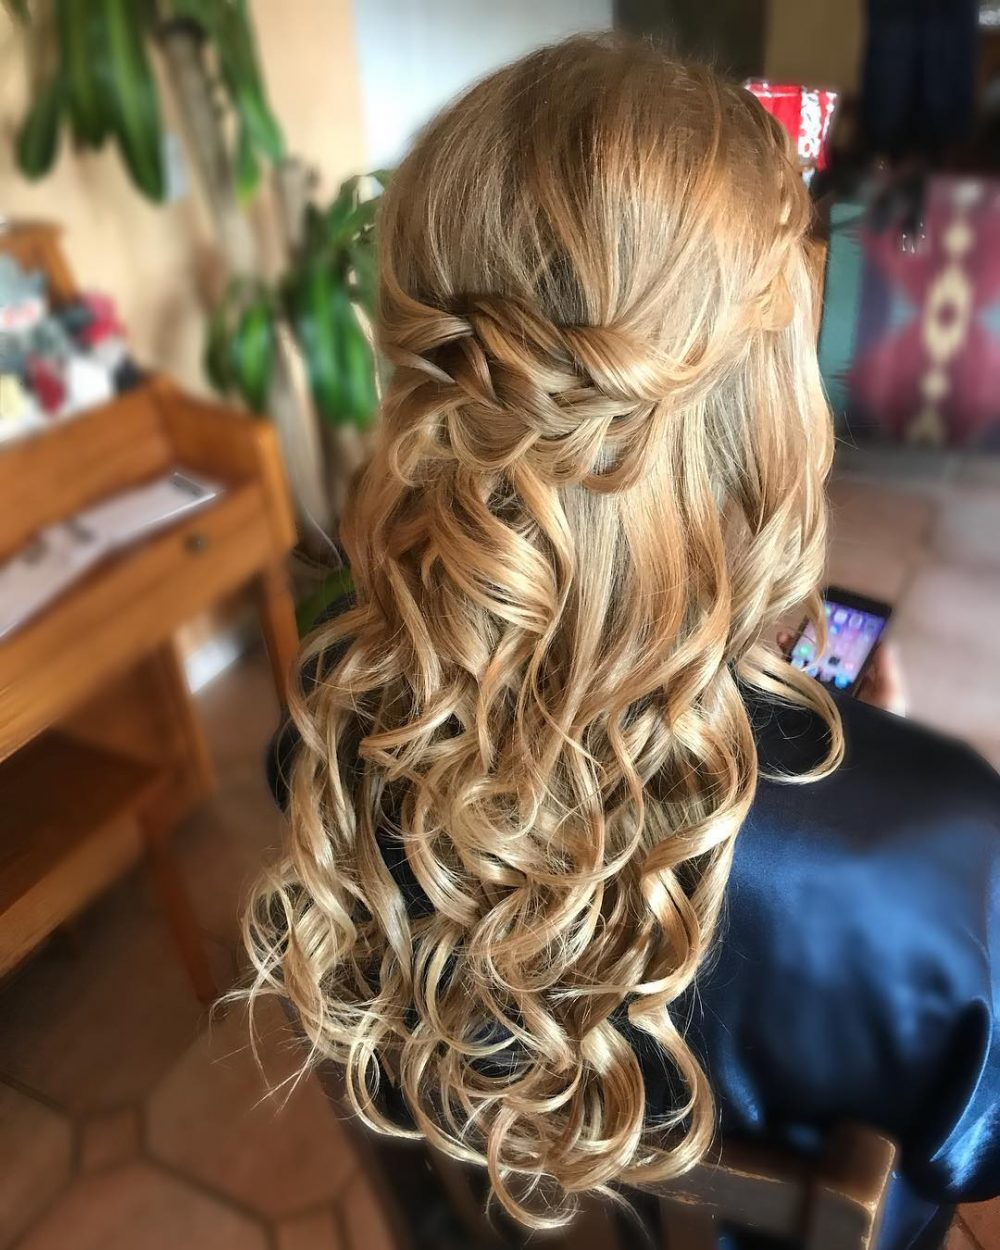 24 gorgeous wedding hairstyles for long hair in 2018 instagram jackiemakeup11 junglespirit Images